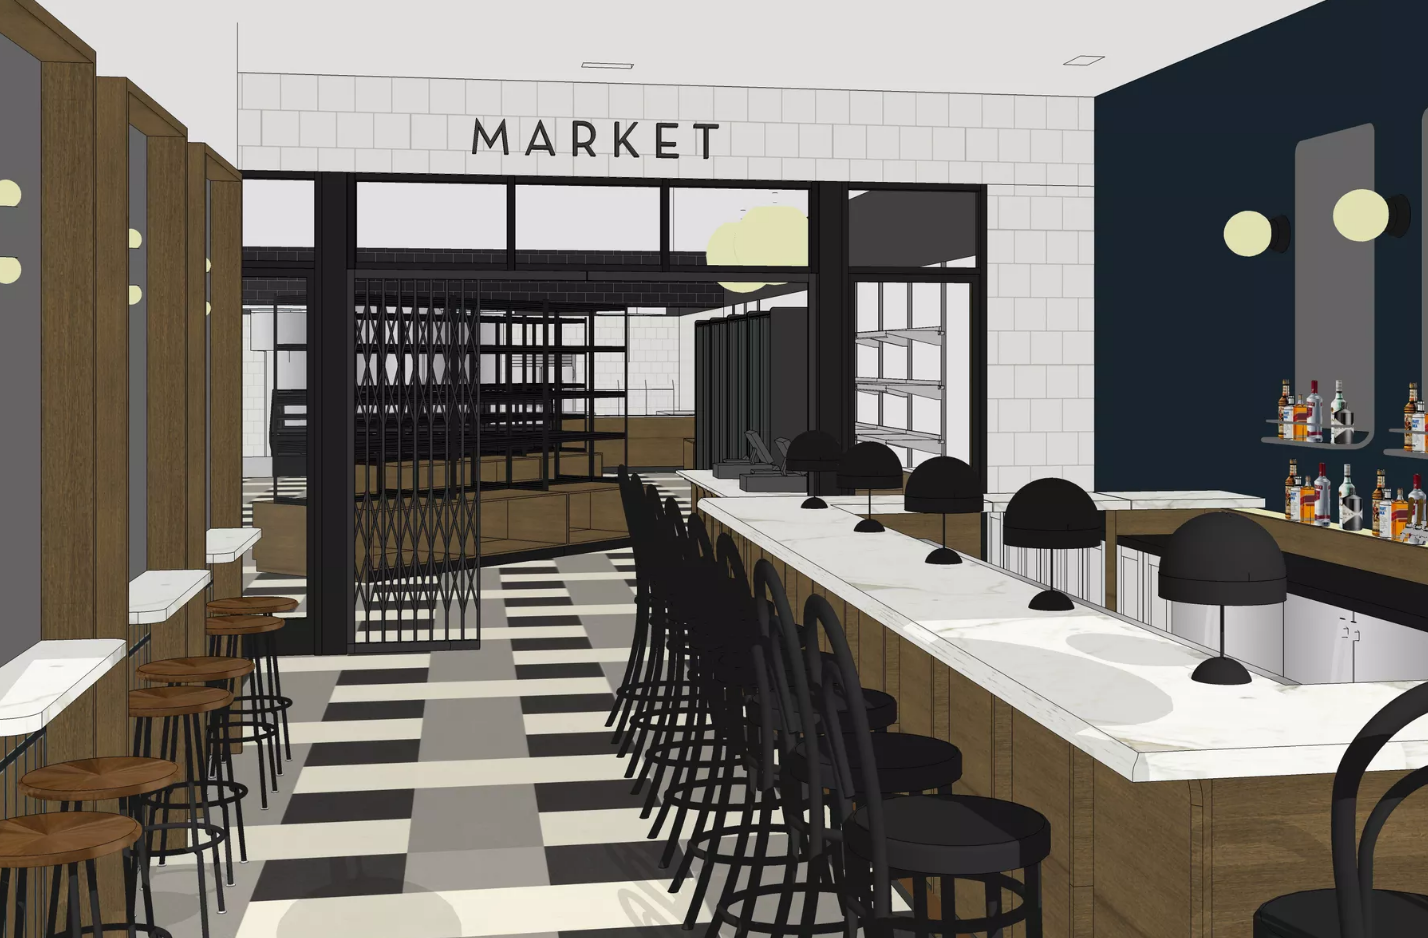 eatori specialty market/restaurant plans an august opening in